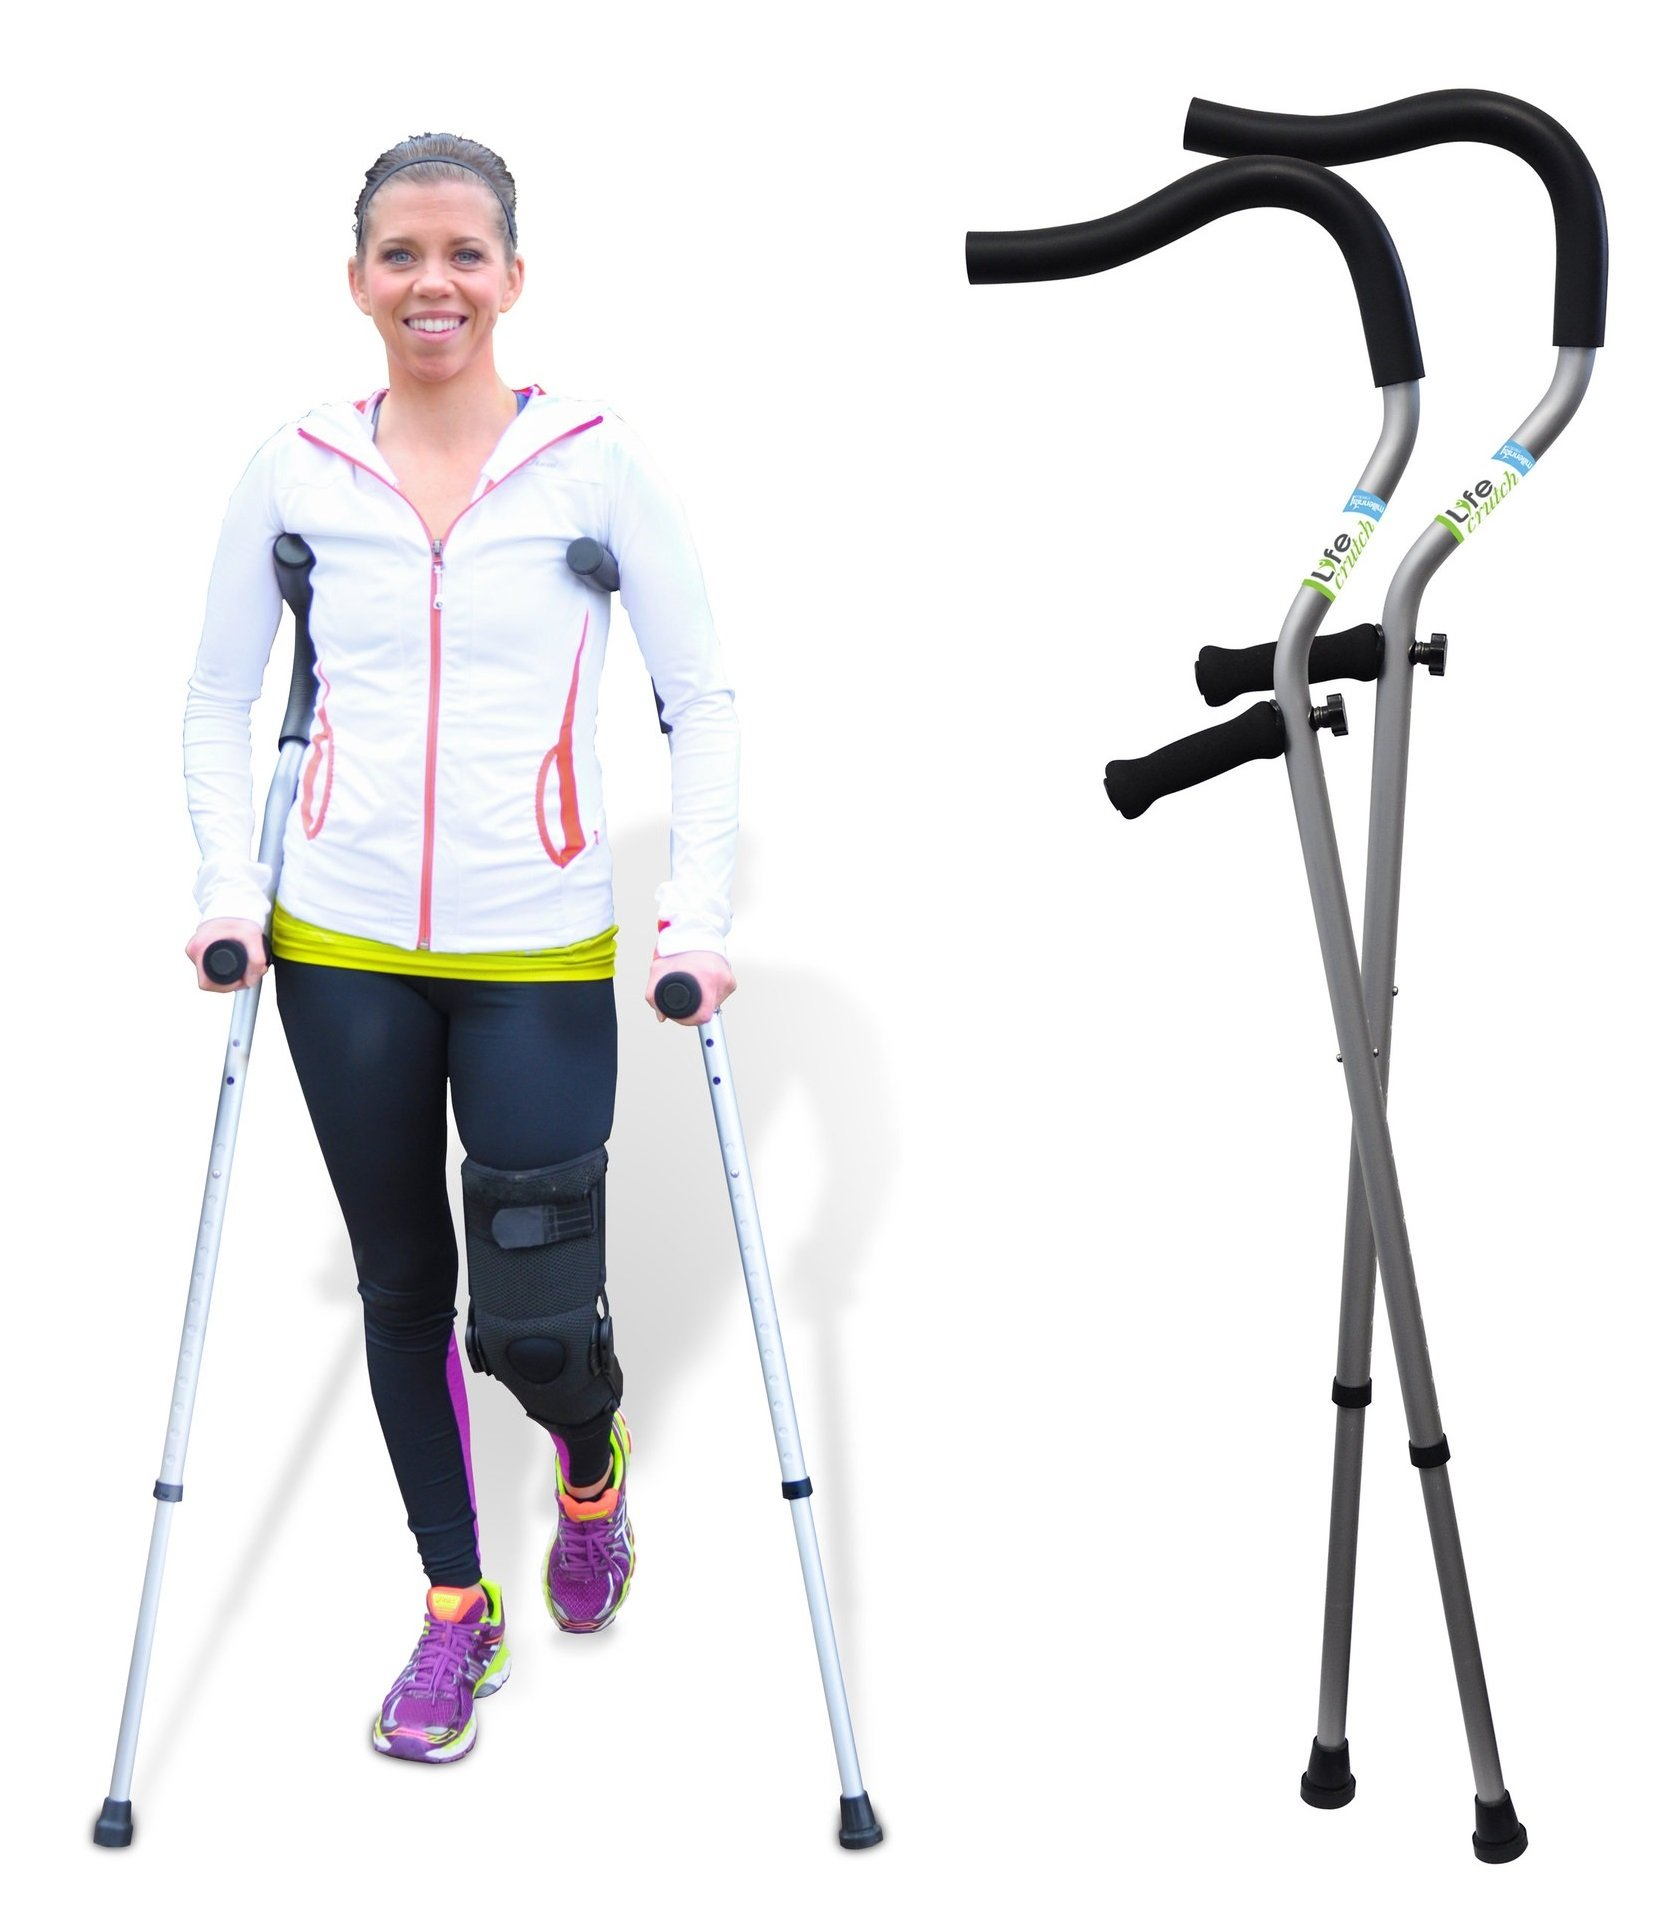 Life Crutch by Millennial Medical, 1 Pair of Crutches - Universal Size 4'6'' - 6'7'' Adjustable Ergonomic Handles for Adult and Child